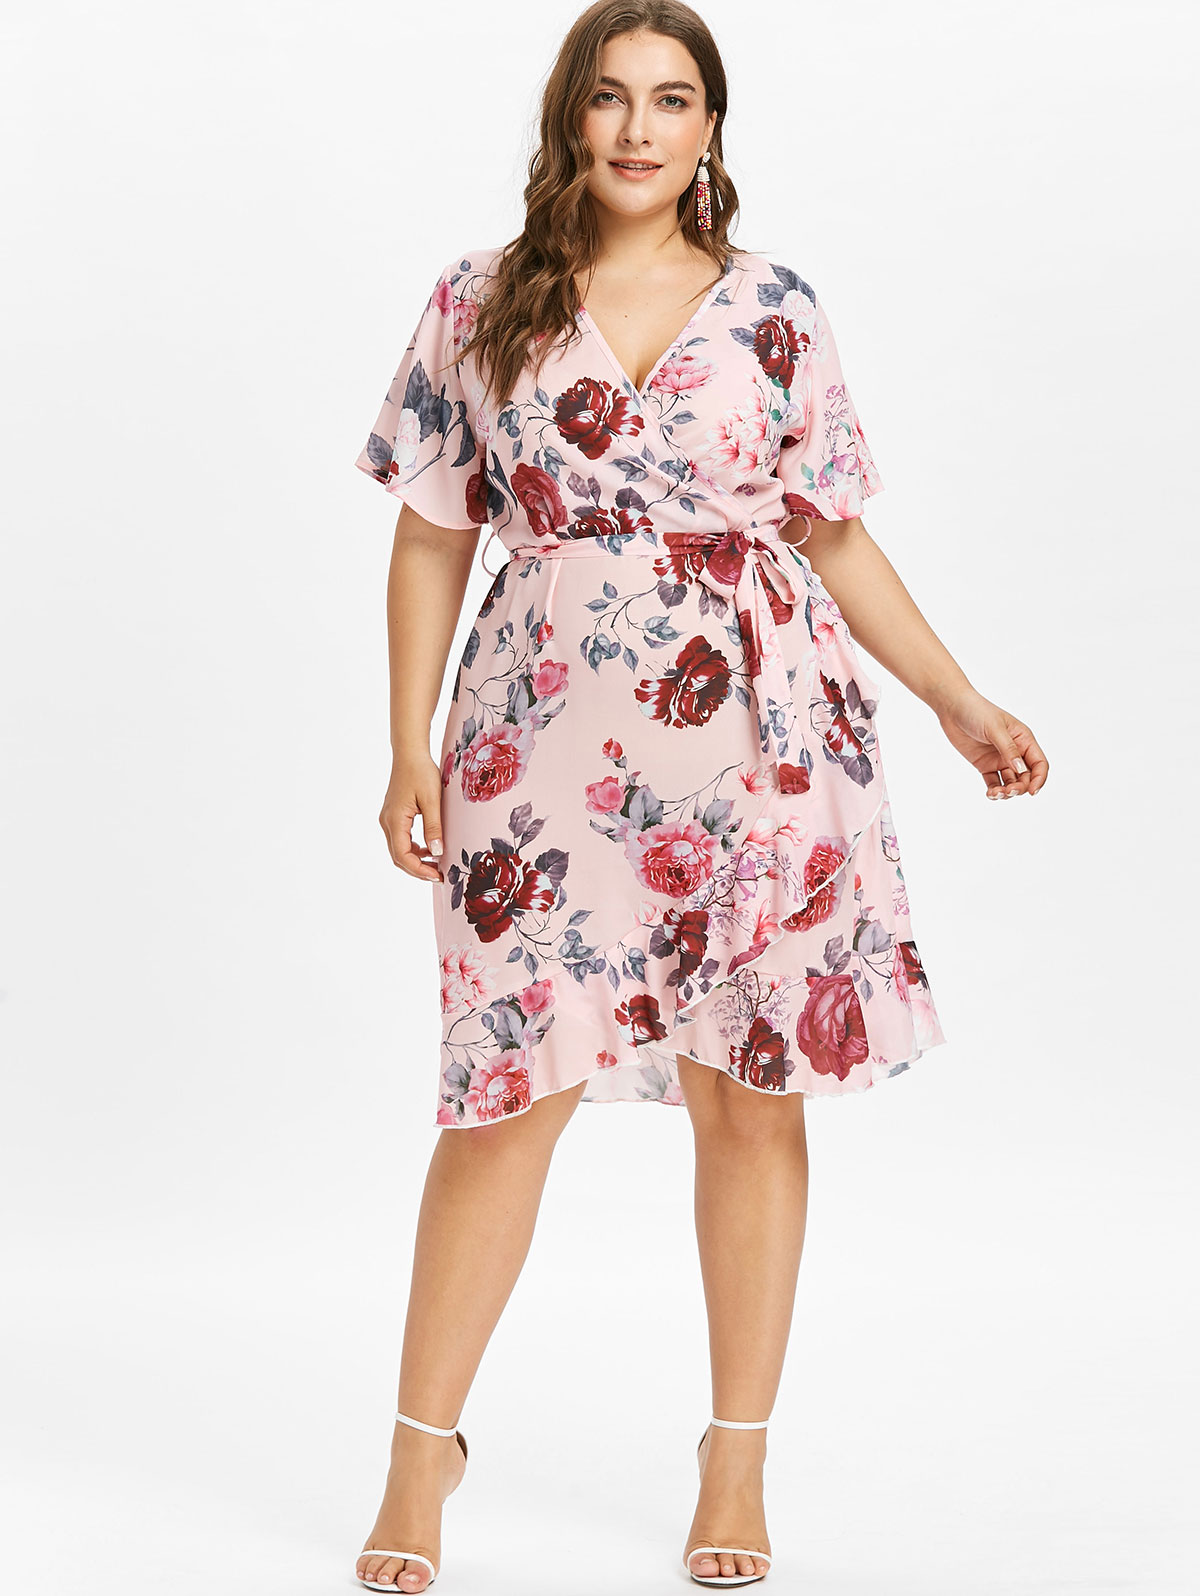 US $29.09 |Gamiss Women Plus Size Short Sleeve Floral Print Surplice Dress  Faux Wrap Knee Length V Neck Asymmetrical Belted Dress Vestidos-in Dresses  ...